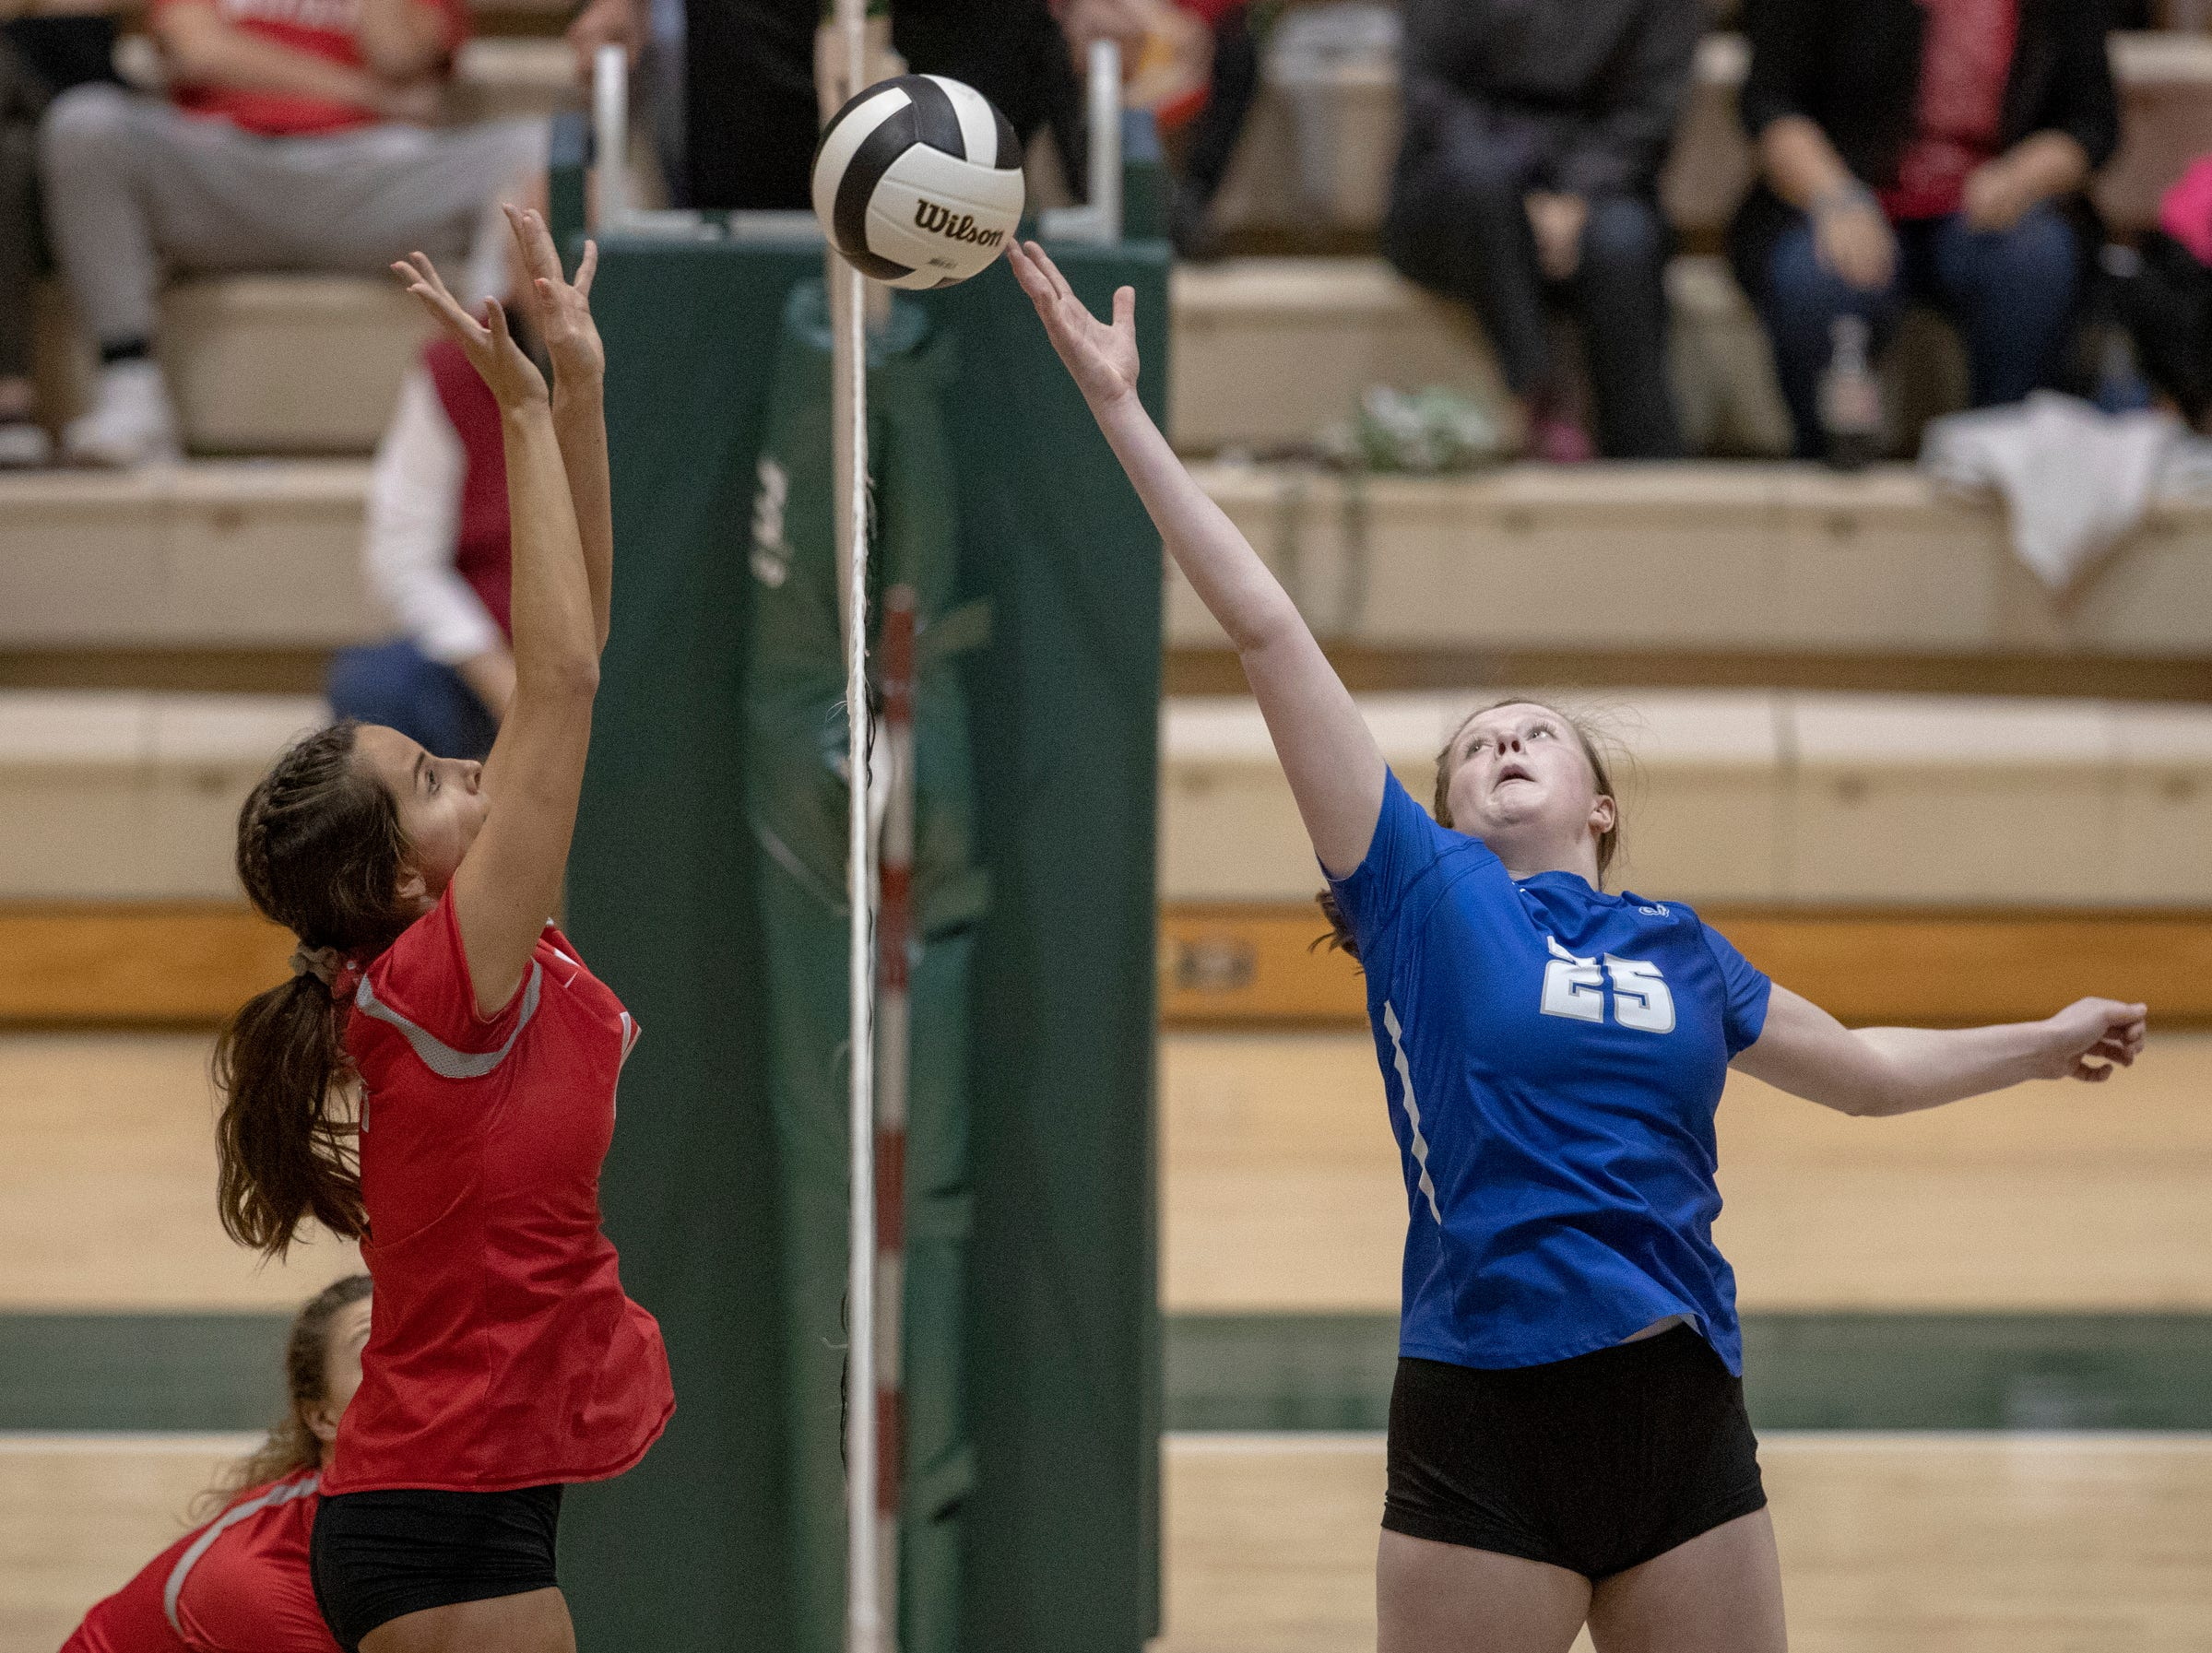 Olivia Phillips (right) of Hamilton Southeastern High School tries to sneak a ball past Fishers High School defenders in three straight sets in the first round of the volleyball sectional at Westfield High School, Westfield, Thursday, Oct. 11, 2018. The win matches them up with Westfield High School for a game on Saturday morning at 11a.m.